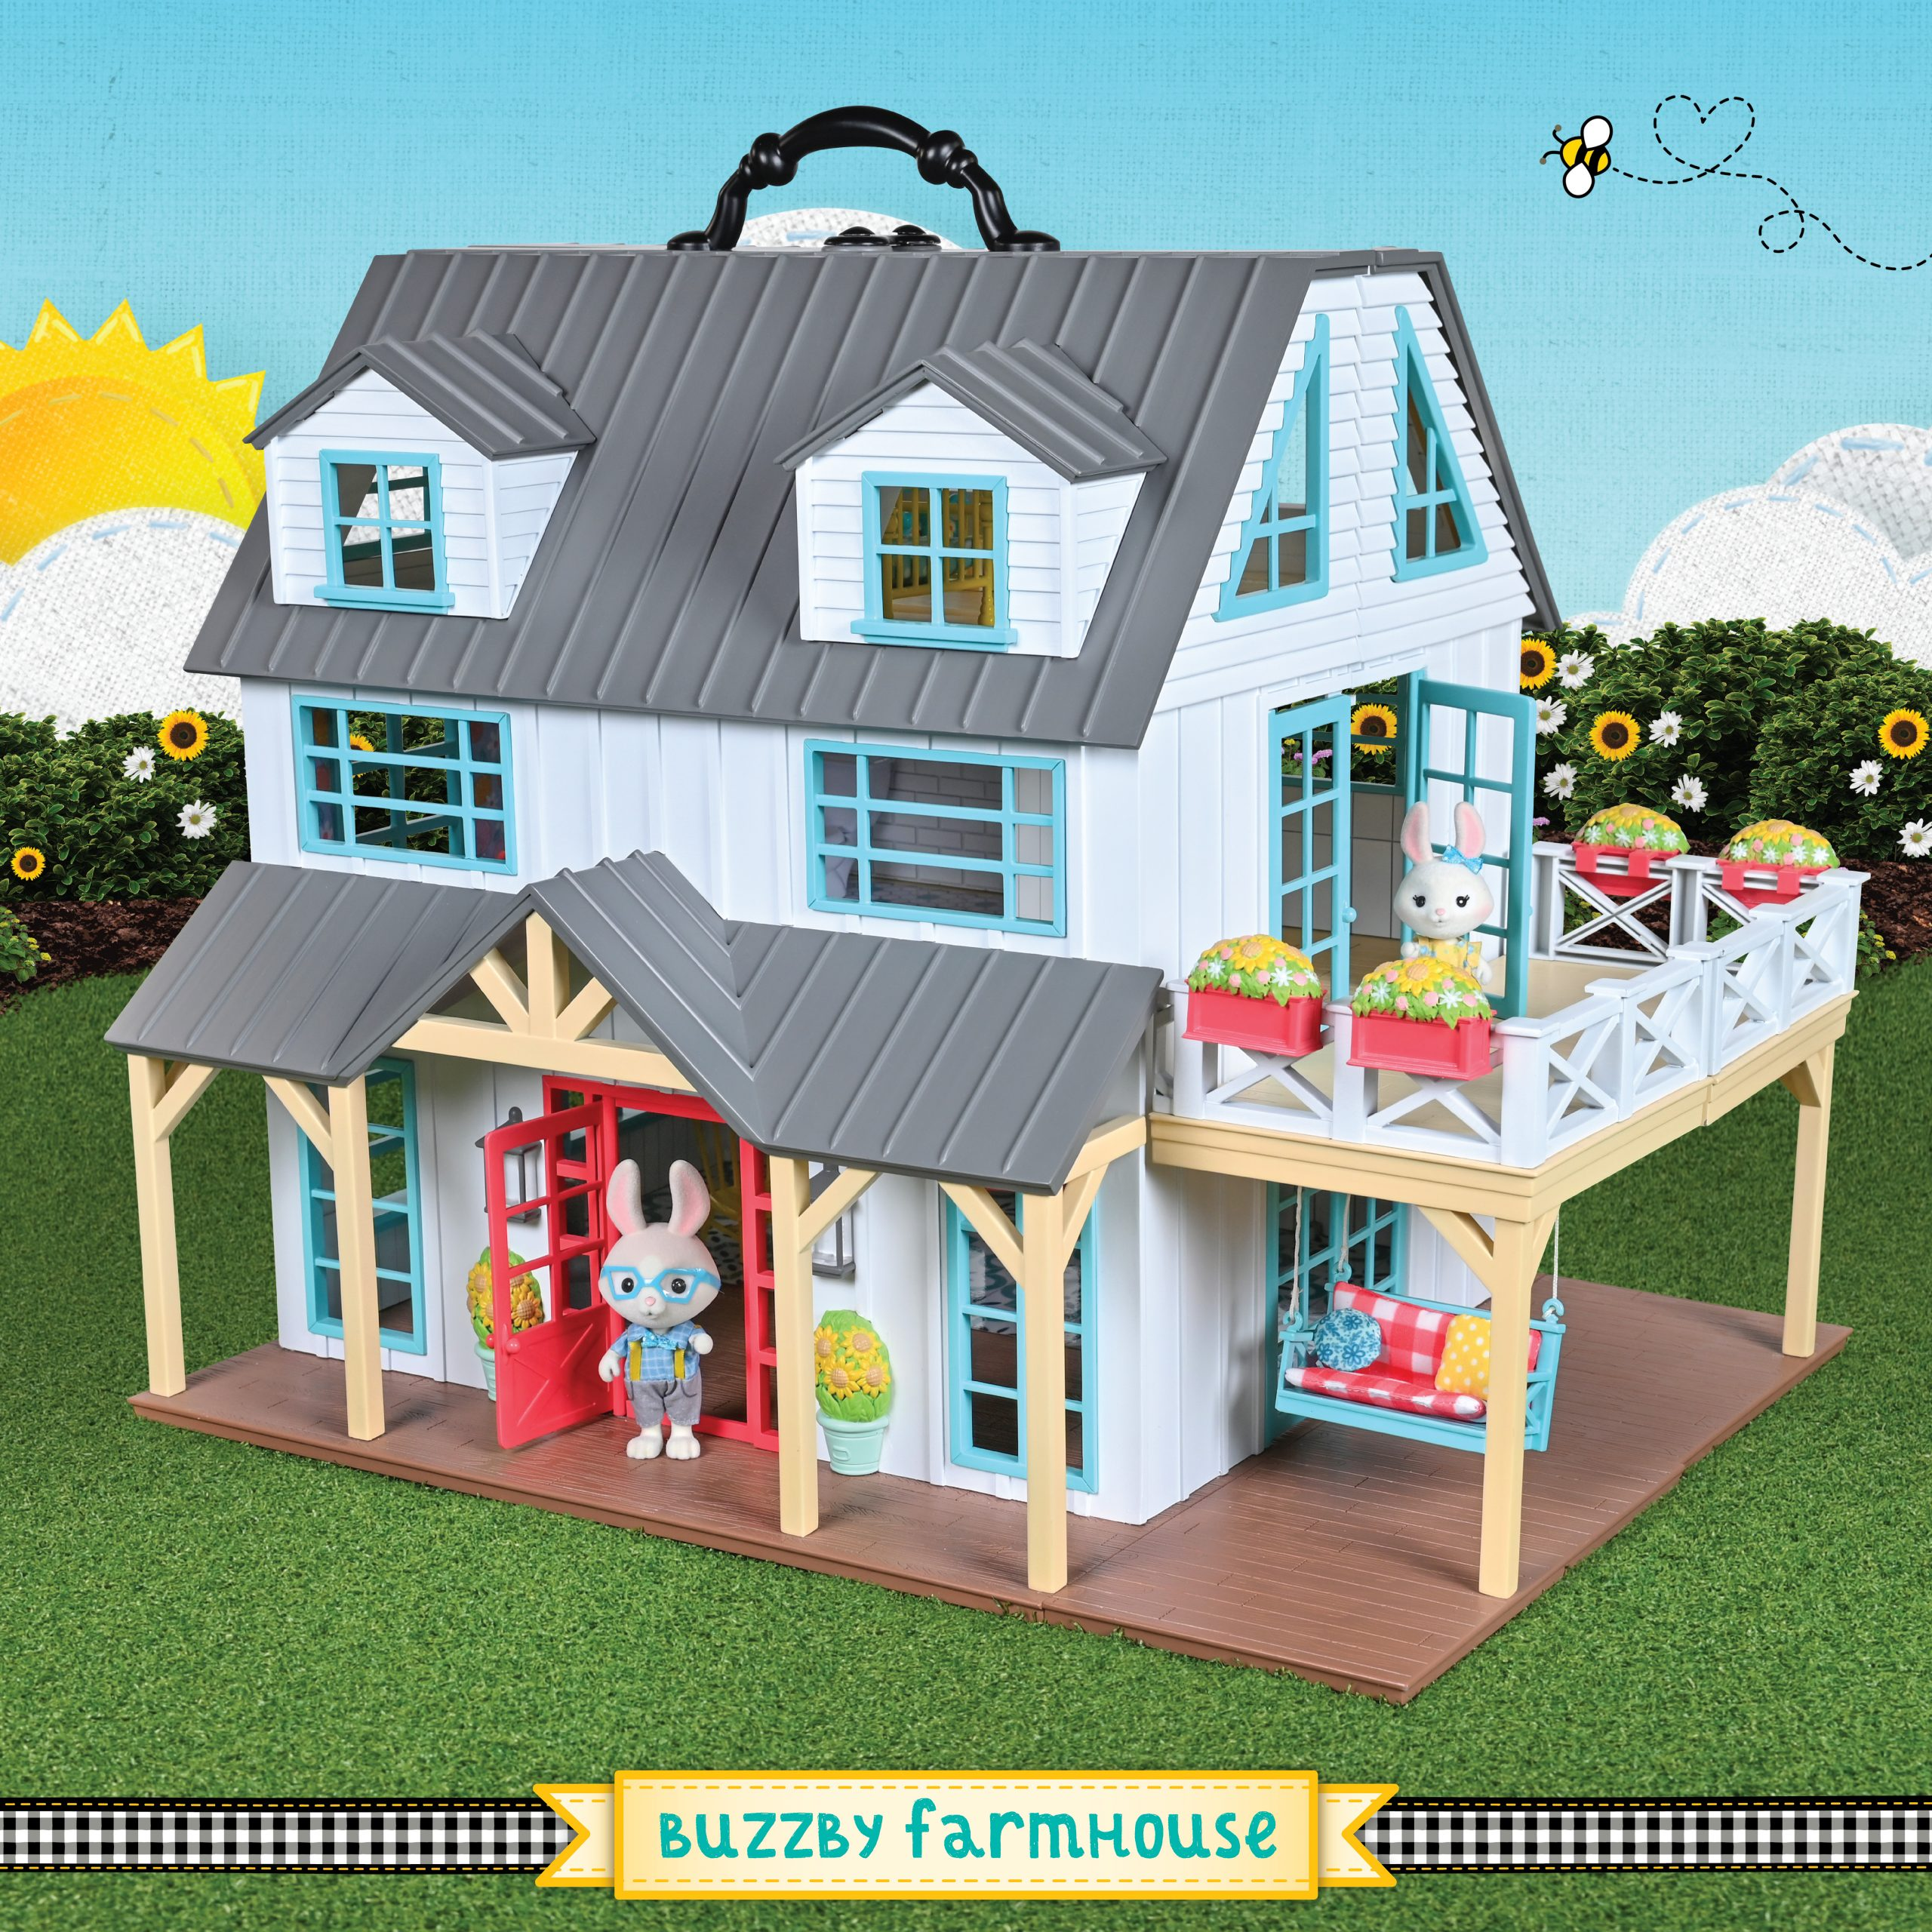 sweet suite at home, honey bee acres buzzby farmhouse, animal playsets, unique dollhouses, walmart exclusive